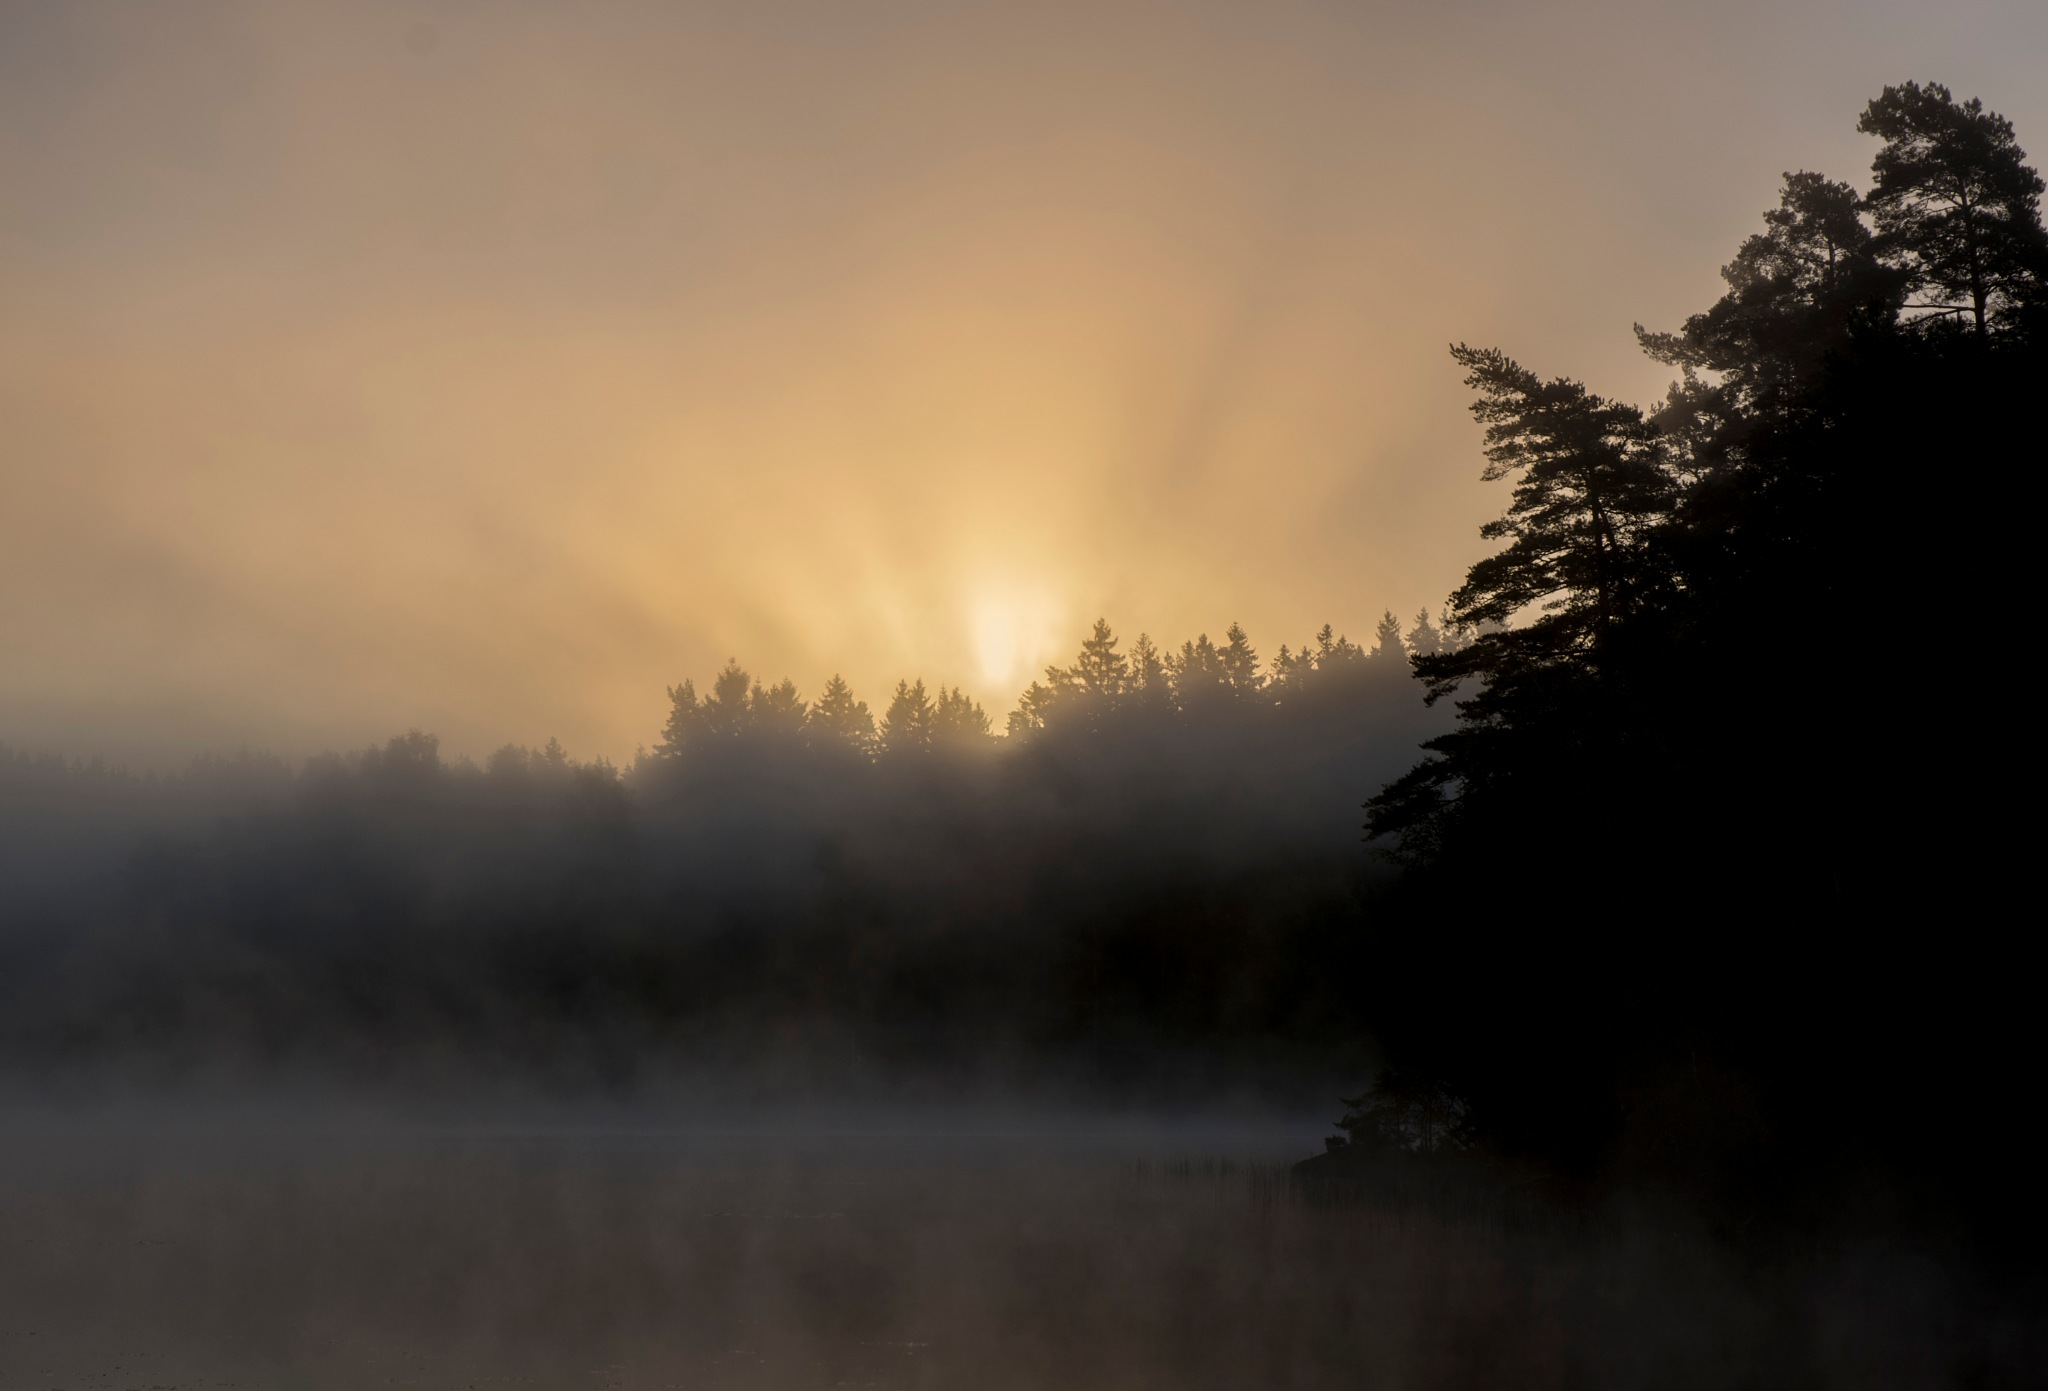 Sun rays by Linda Persson